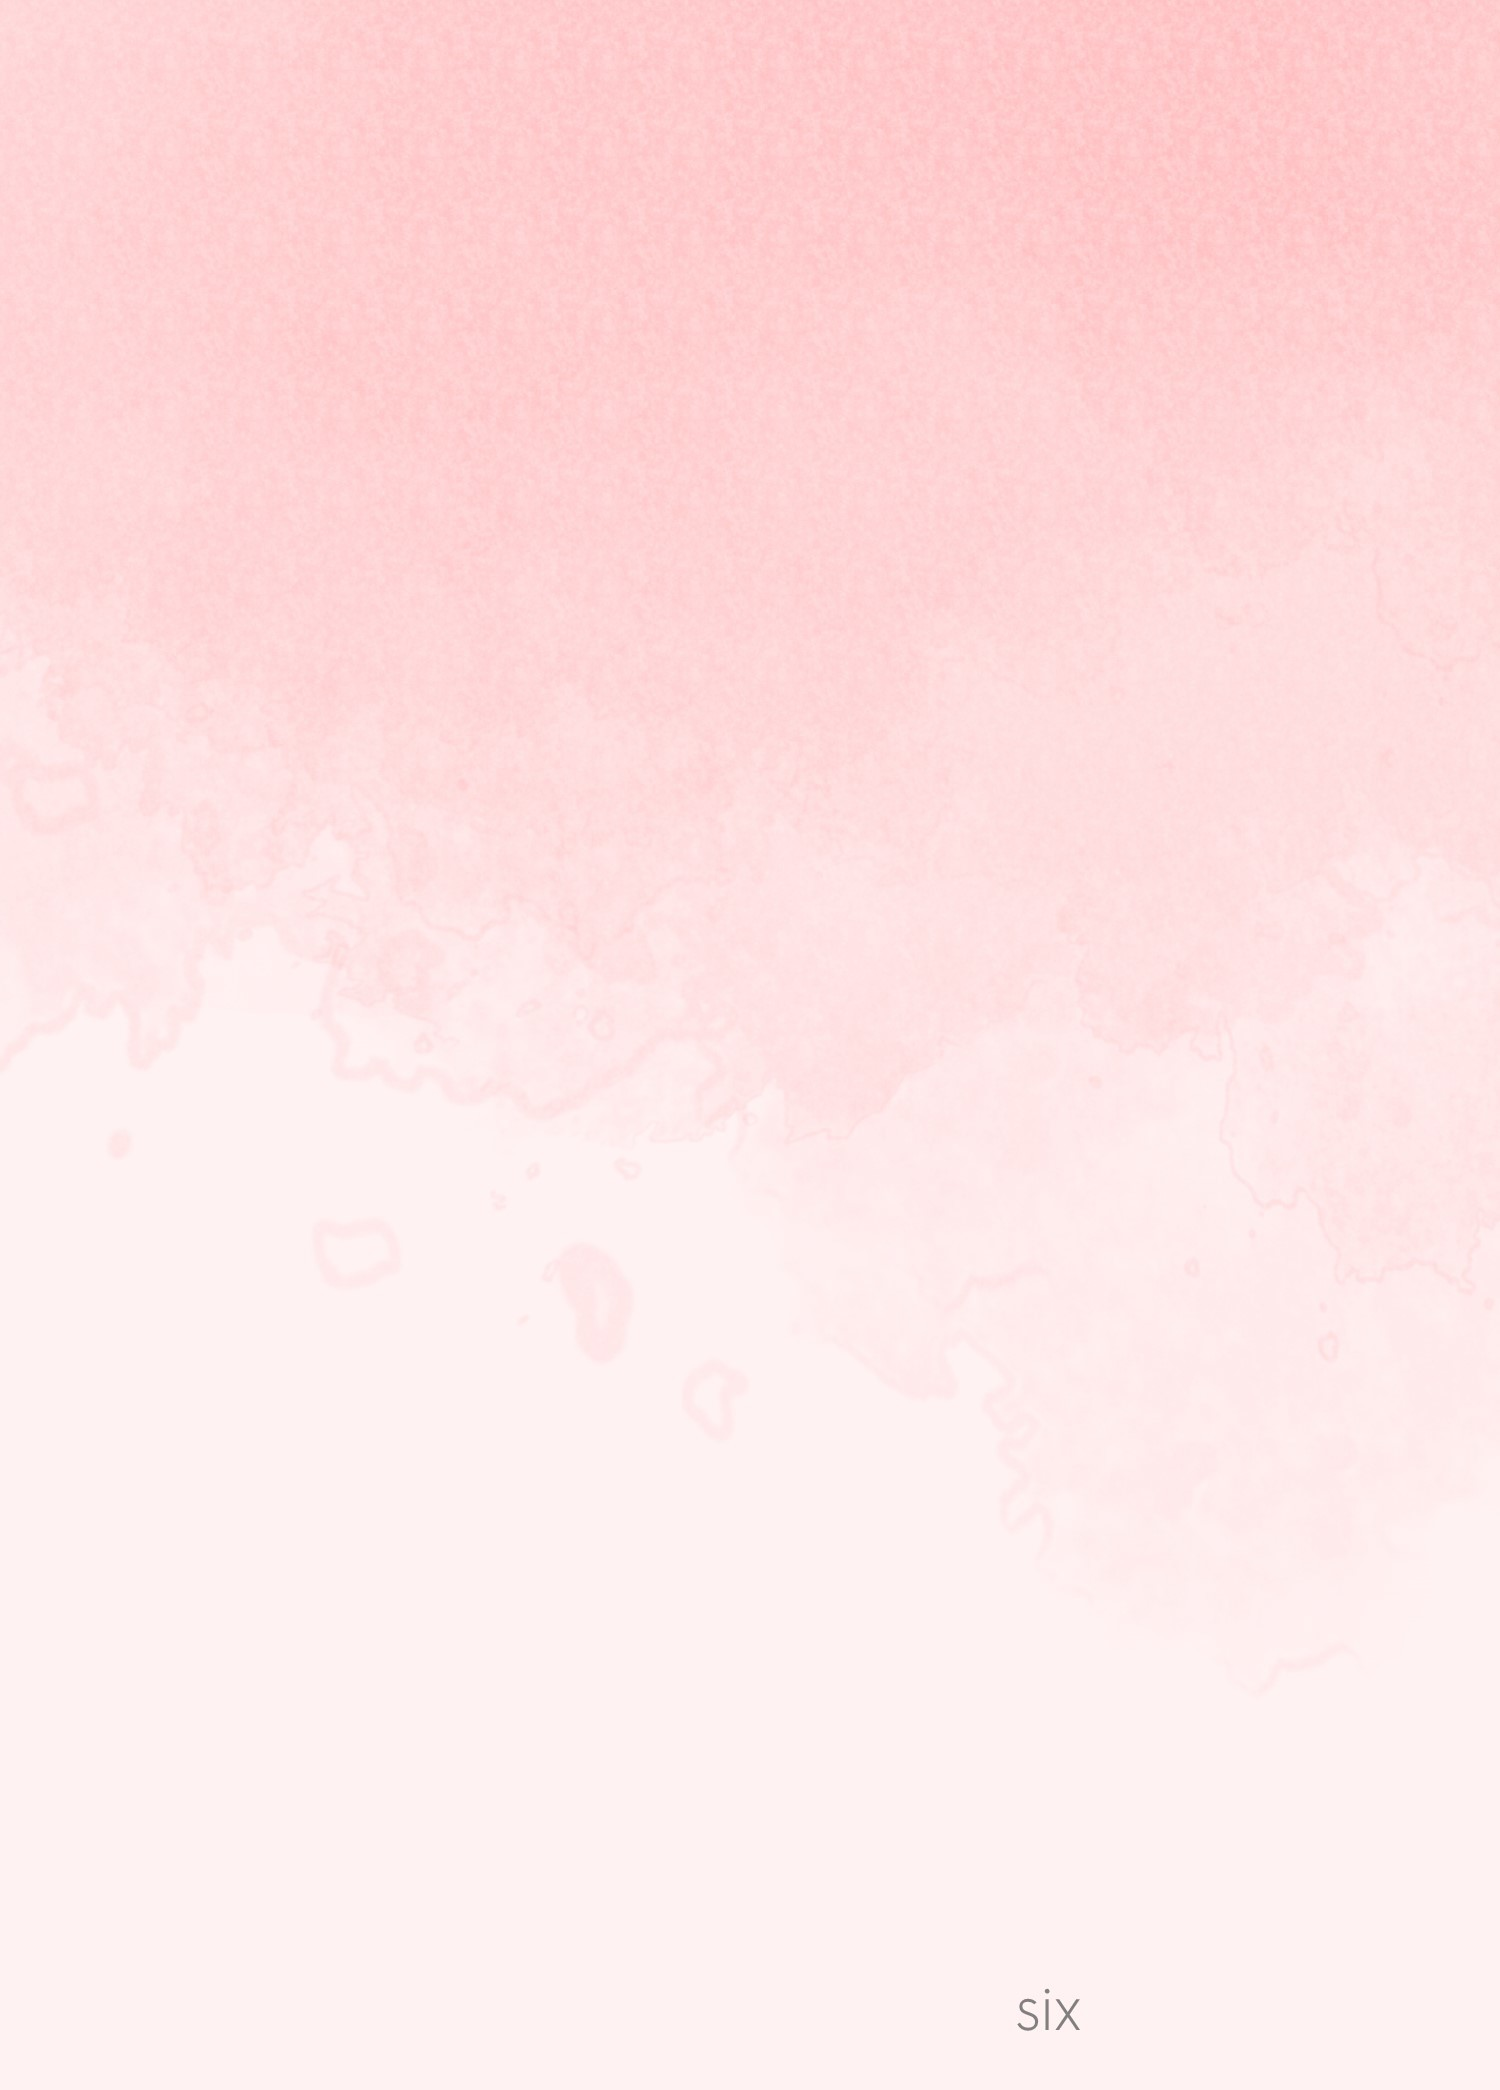 Always need pink watercolour backgrounds